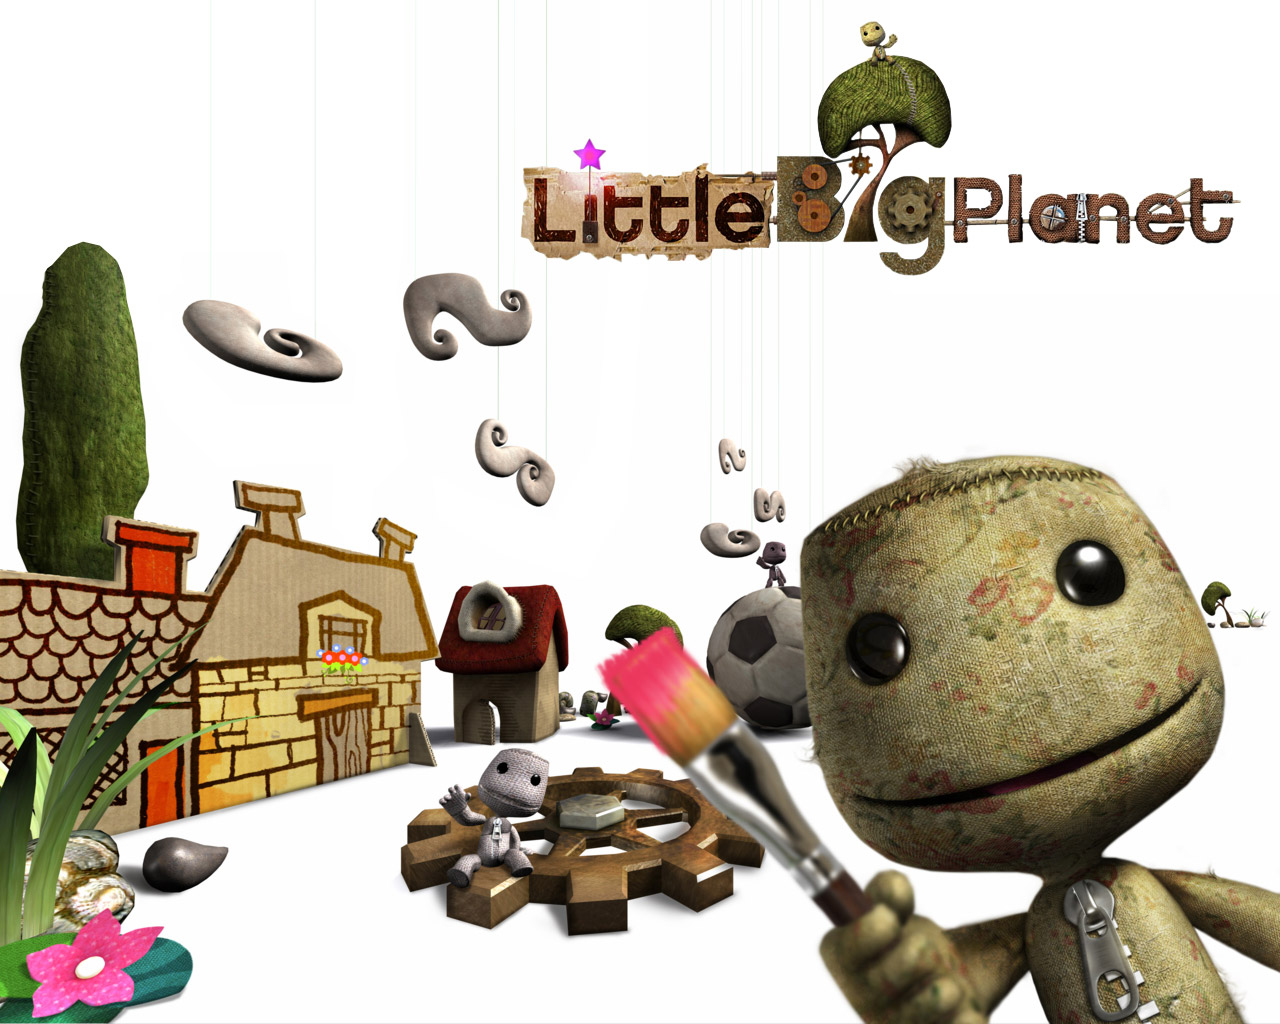 http://www.multiplayergames.com/wp-content/uploads/2009/12/little_big_planet.jpg